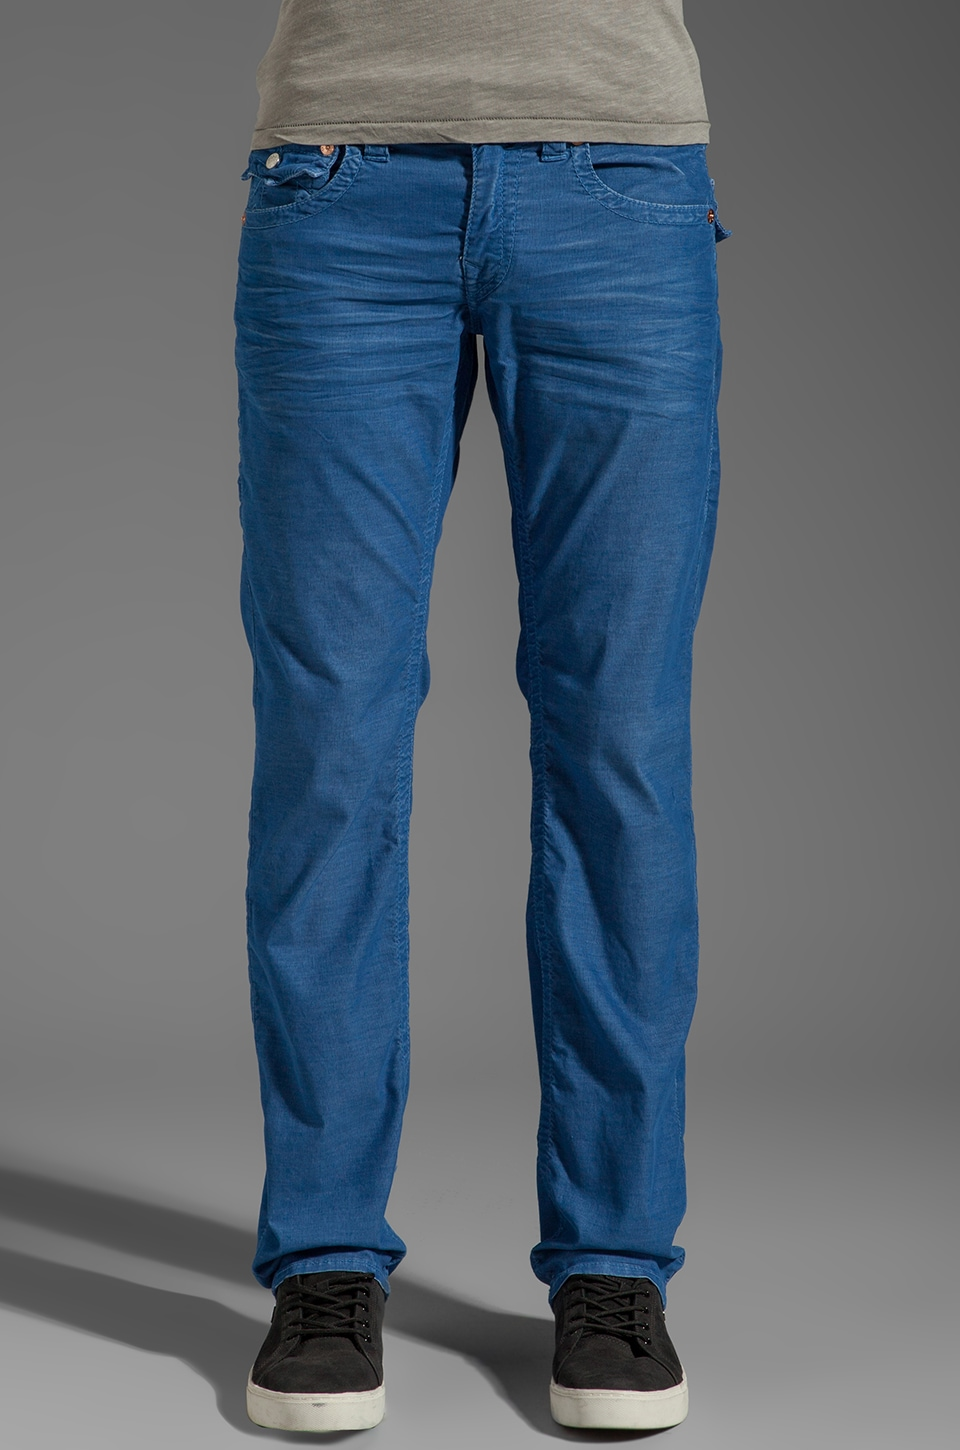 True Religion Ricky Straight Leg Cord in Royal Blue